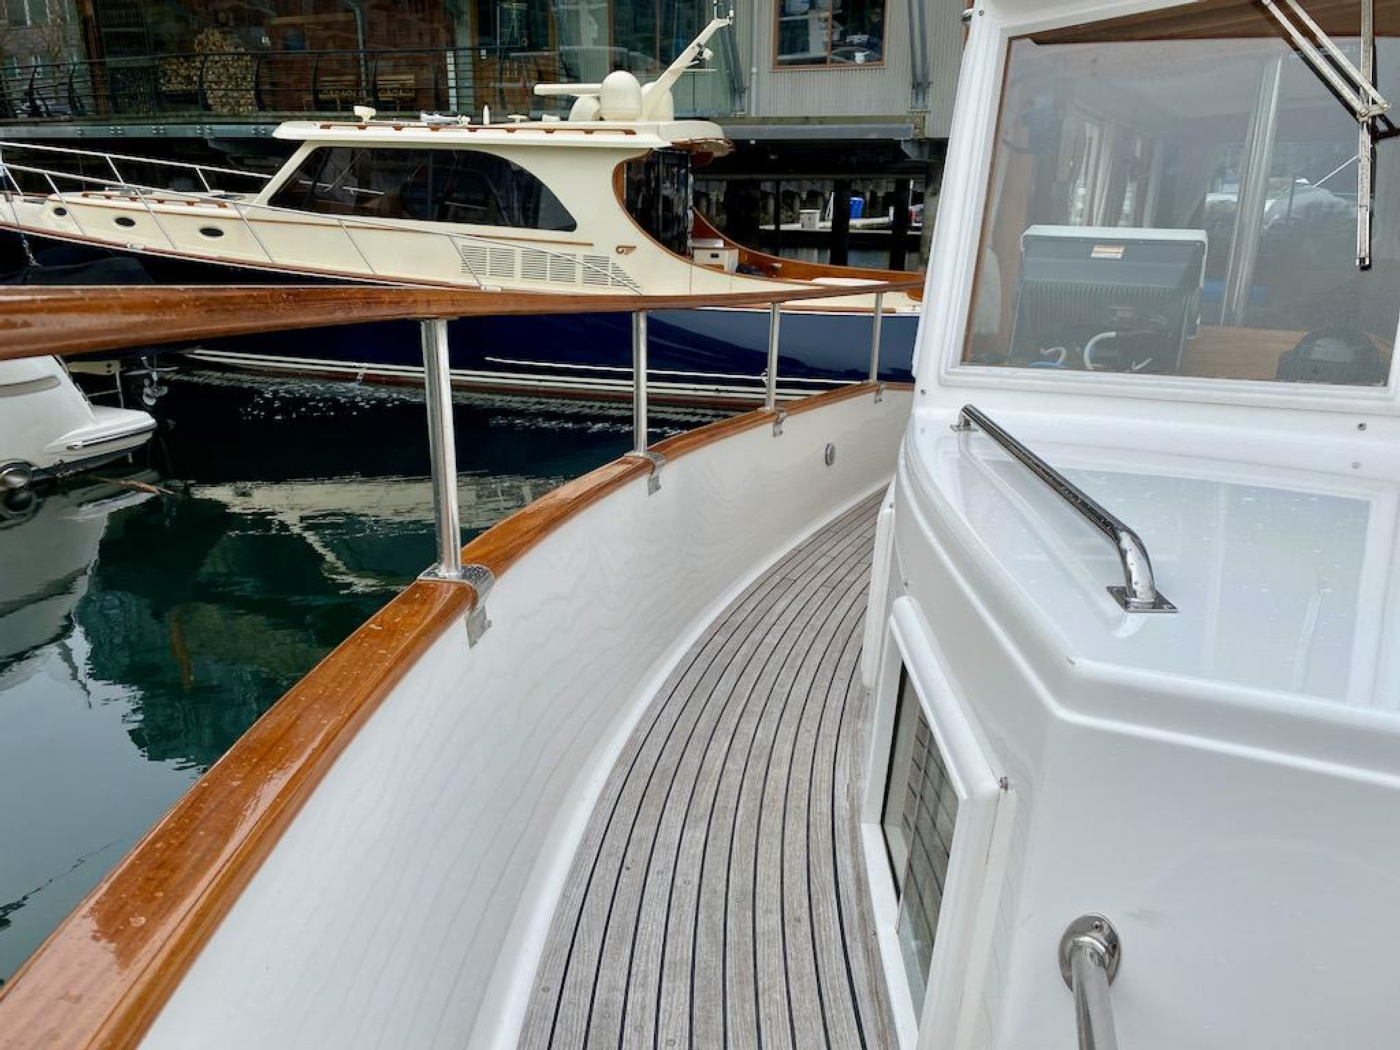 1998 Grand Banks 42 Classic, Starboard deck